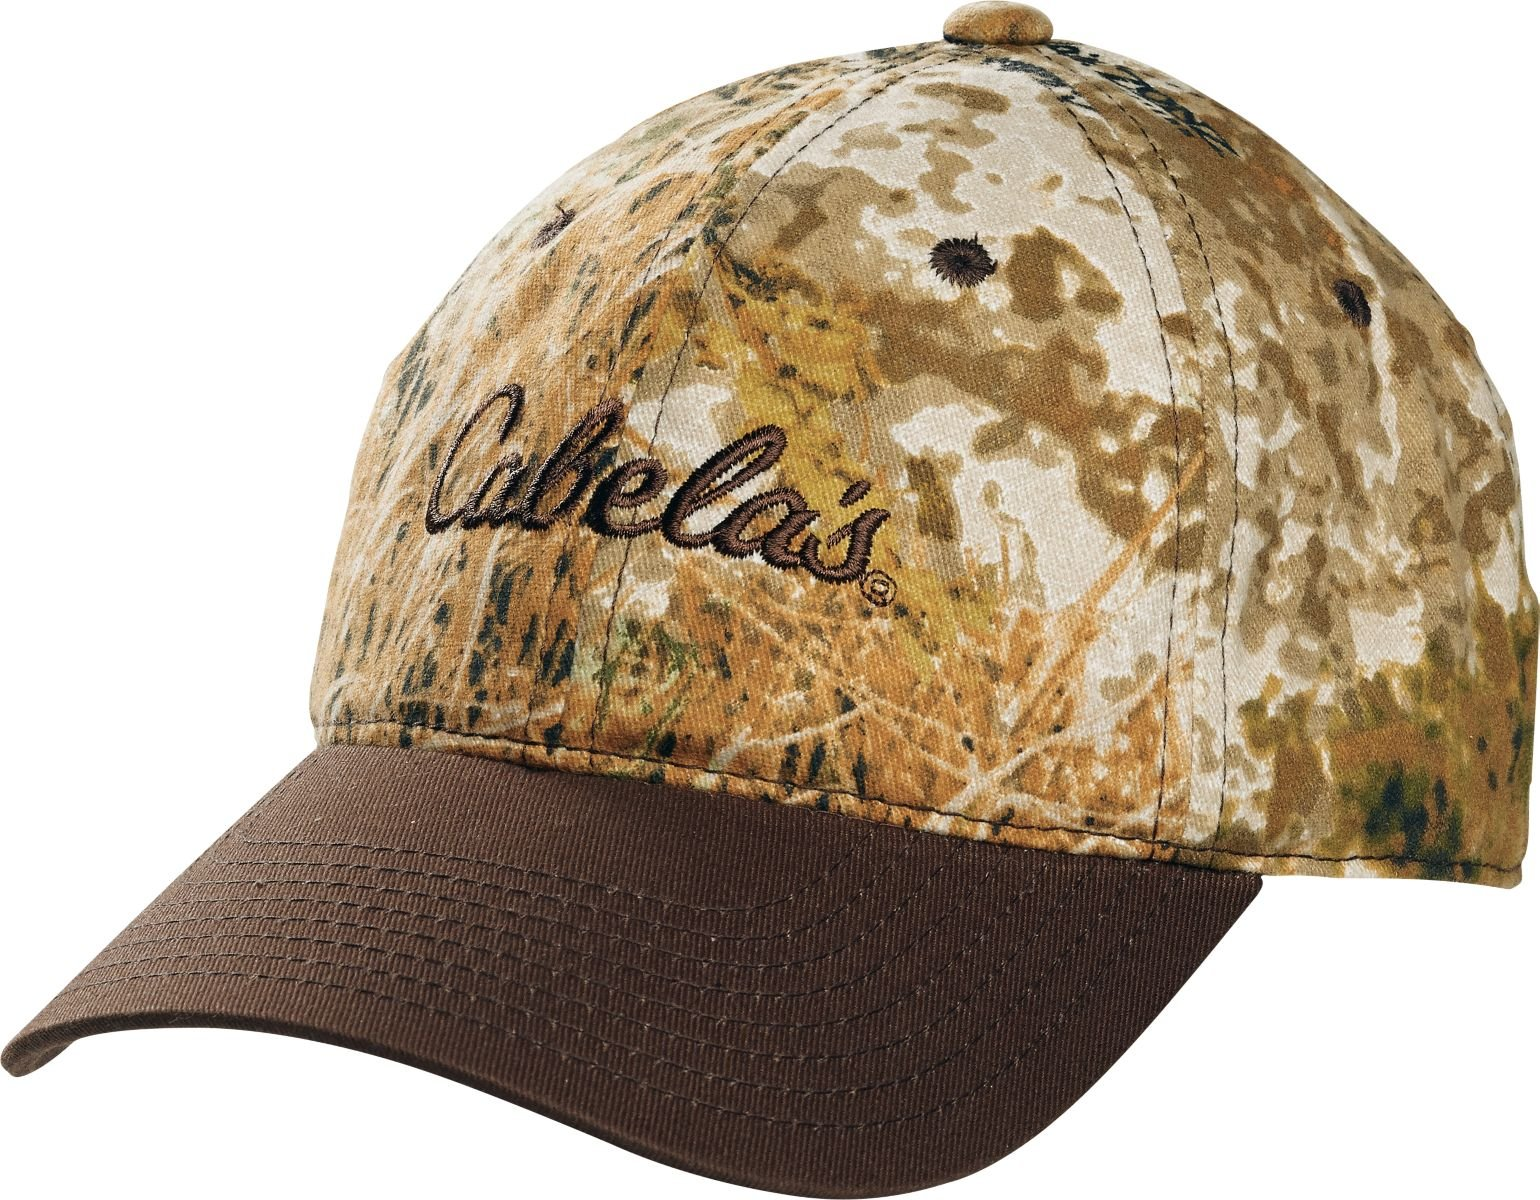 dfed20bc93d Cabela s Men s Outfitter Classic Cap -  1.99 (Free 2-Day S H over  50)